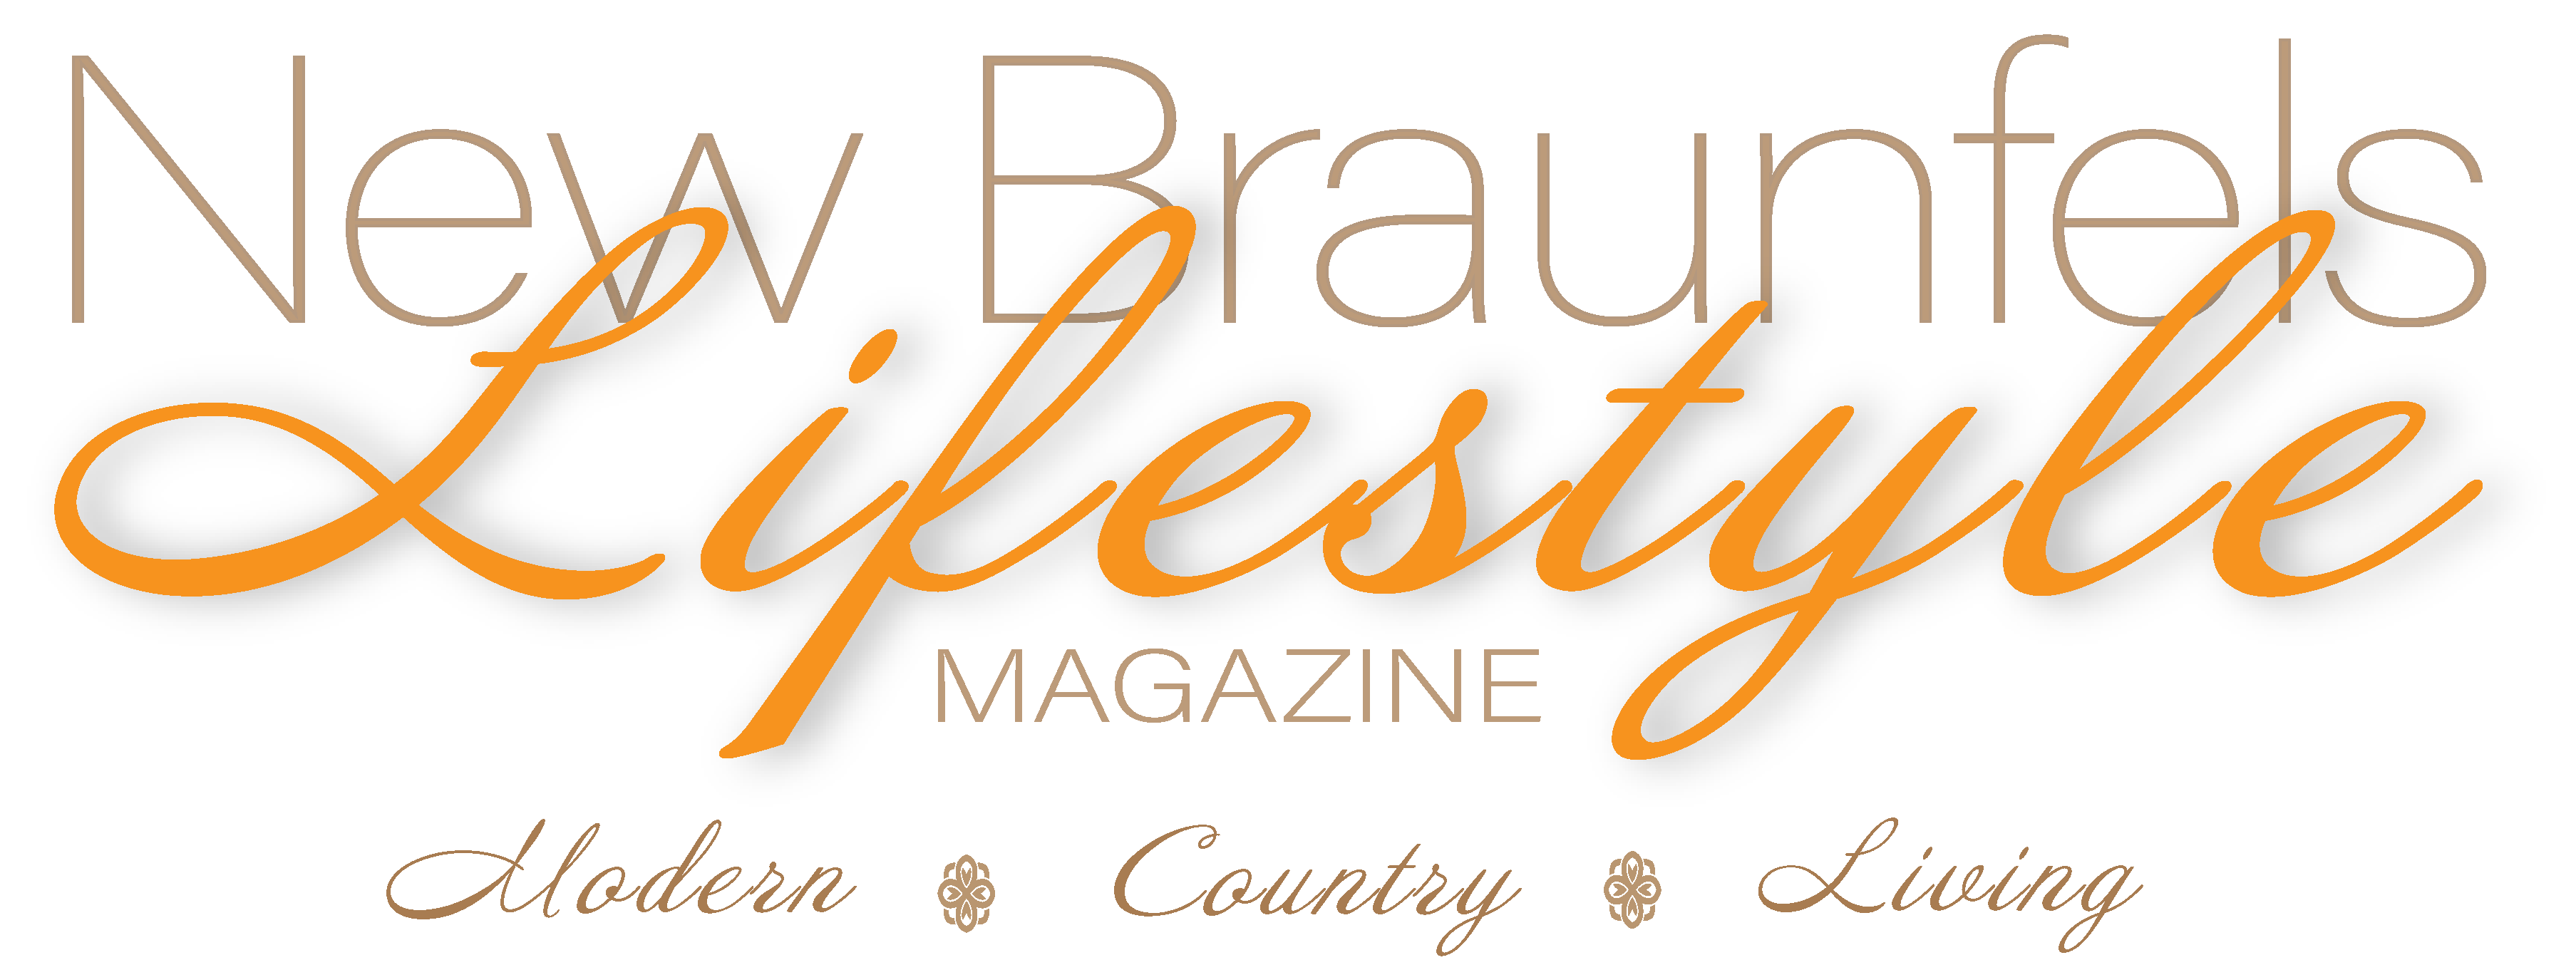 New Braunfels Lifestyle Magazine